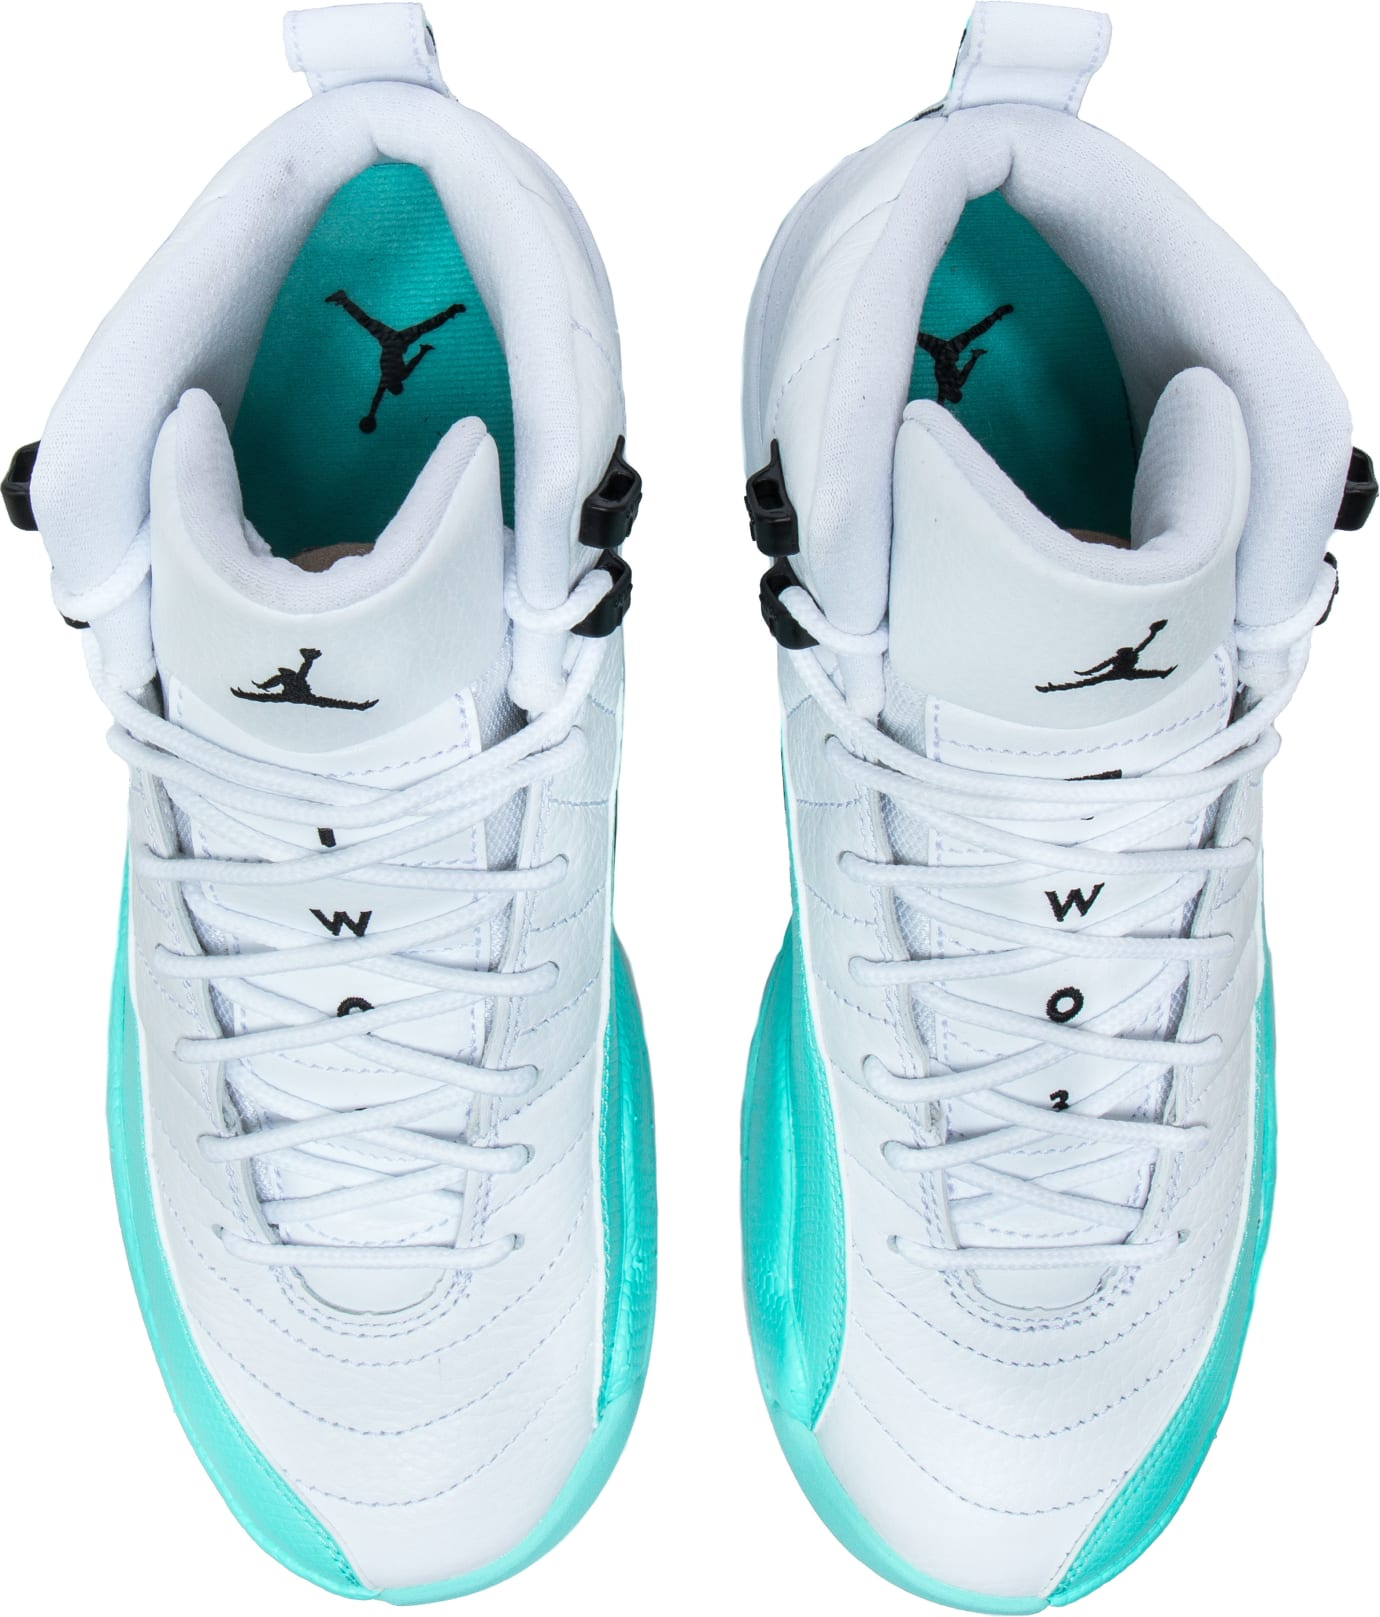 10ec096ea85f Image via Shoe Palace Air Jordan 12 XII Retro GG  White Light Aqua Black   510815-